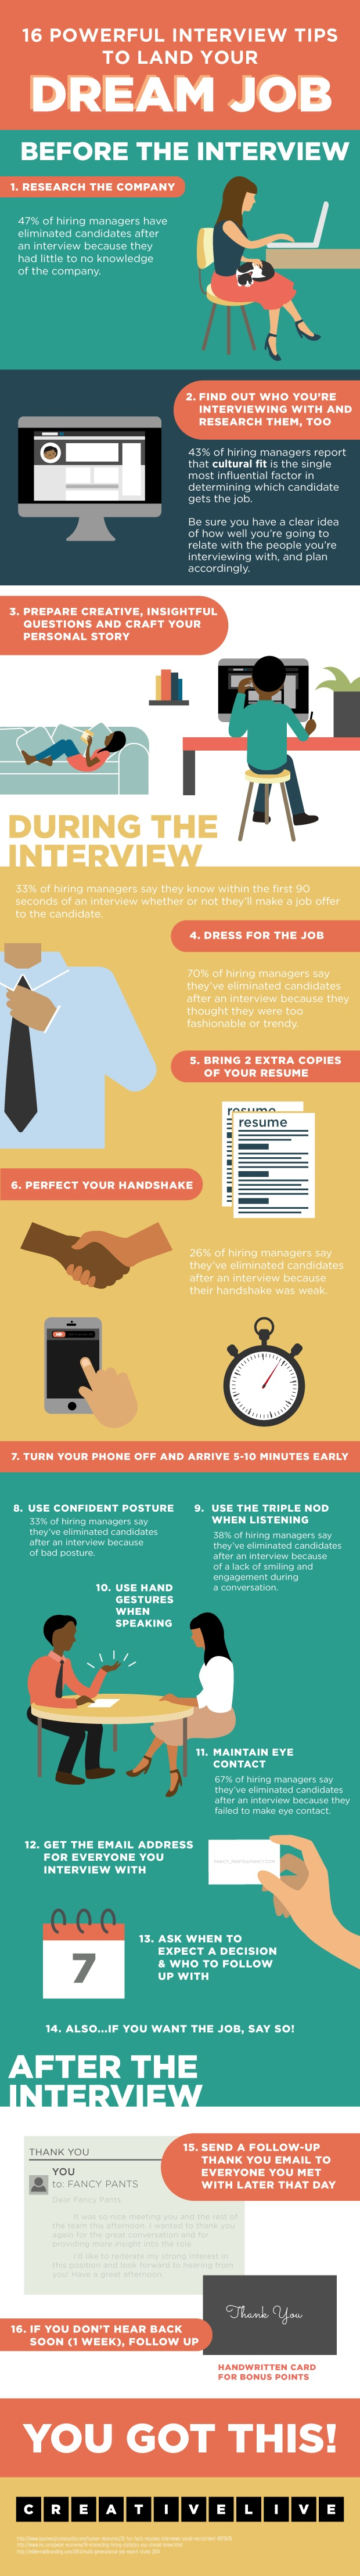 16 powerful interview tips to land your dream job infographic the savvy intern by youtern